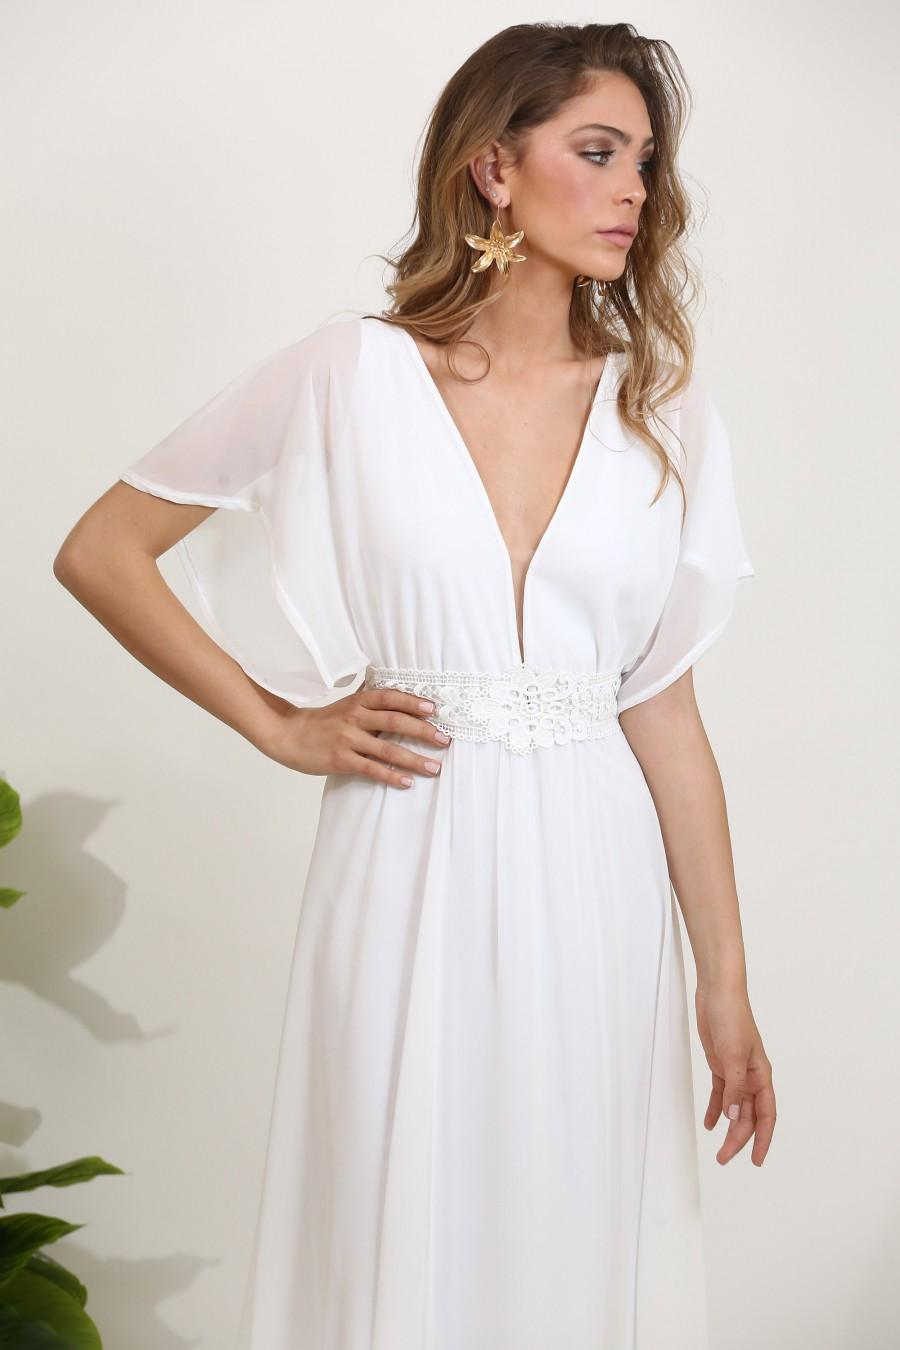 Mariage - Chiffon wedding dress with an embroidery lace belt and train, plunge neckline casual wedding dress, boho wedding dress, beach wedding dress